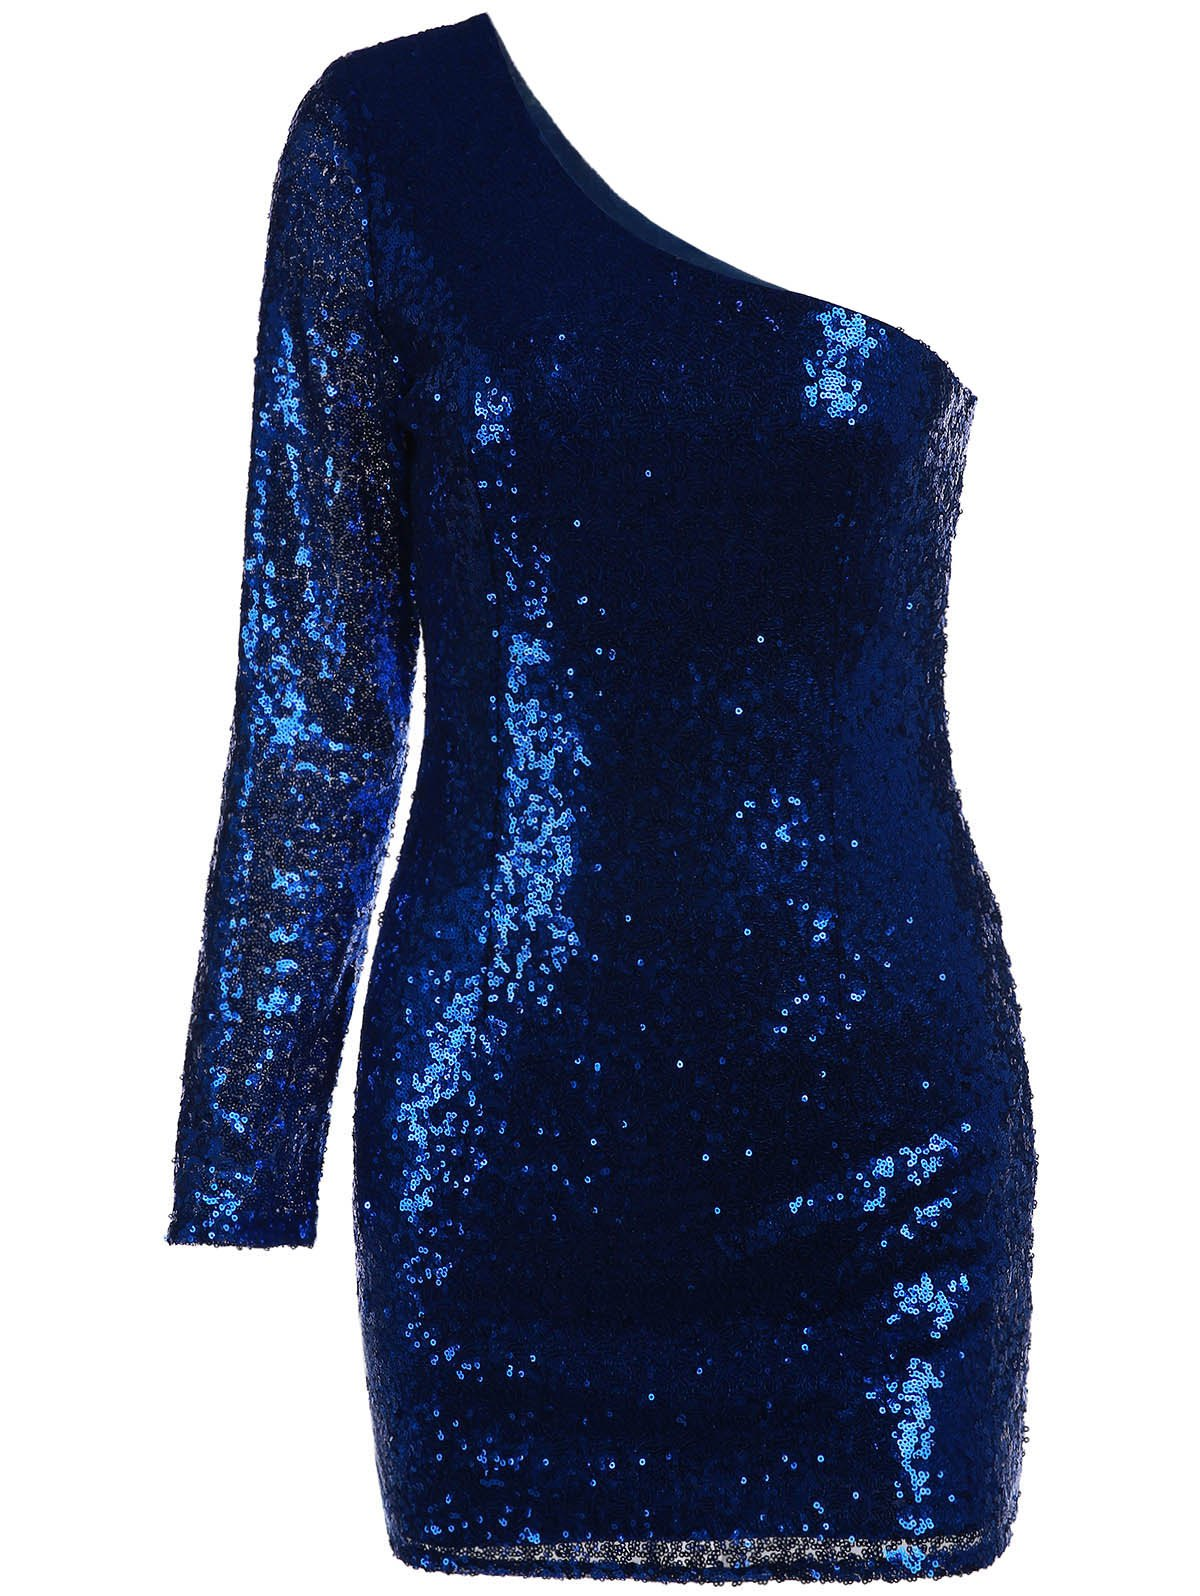 Chic Women's One Shoulder Sequined Long Sleeve Dress - DEEP BLUE M